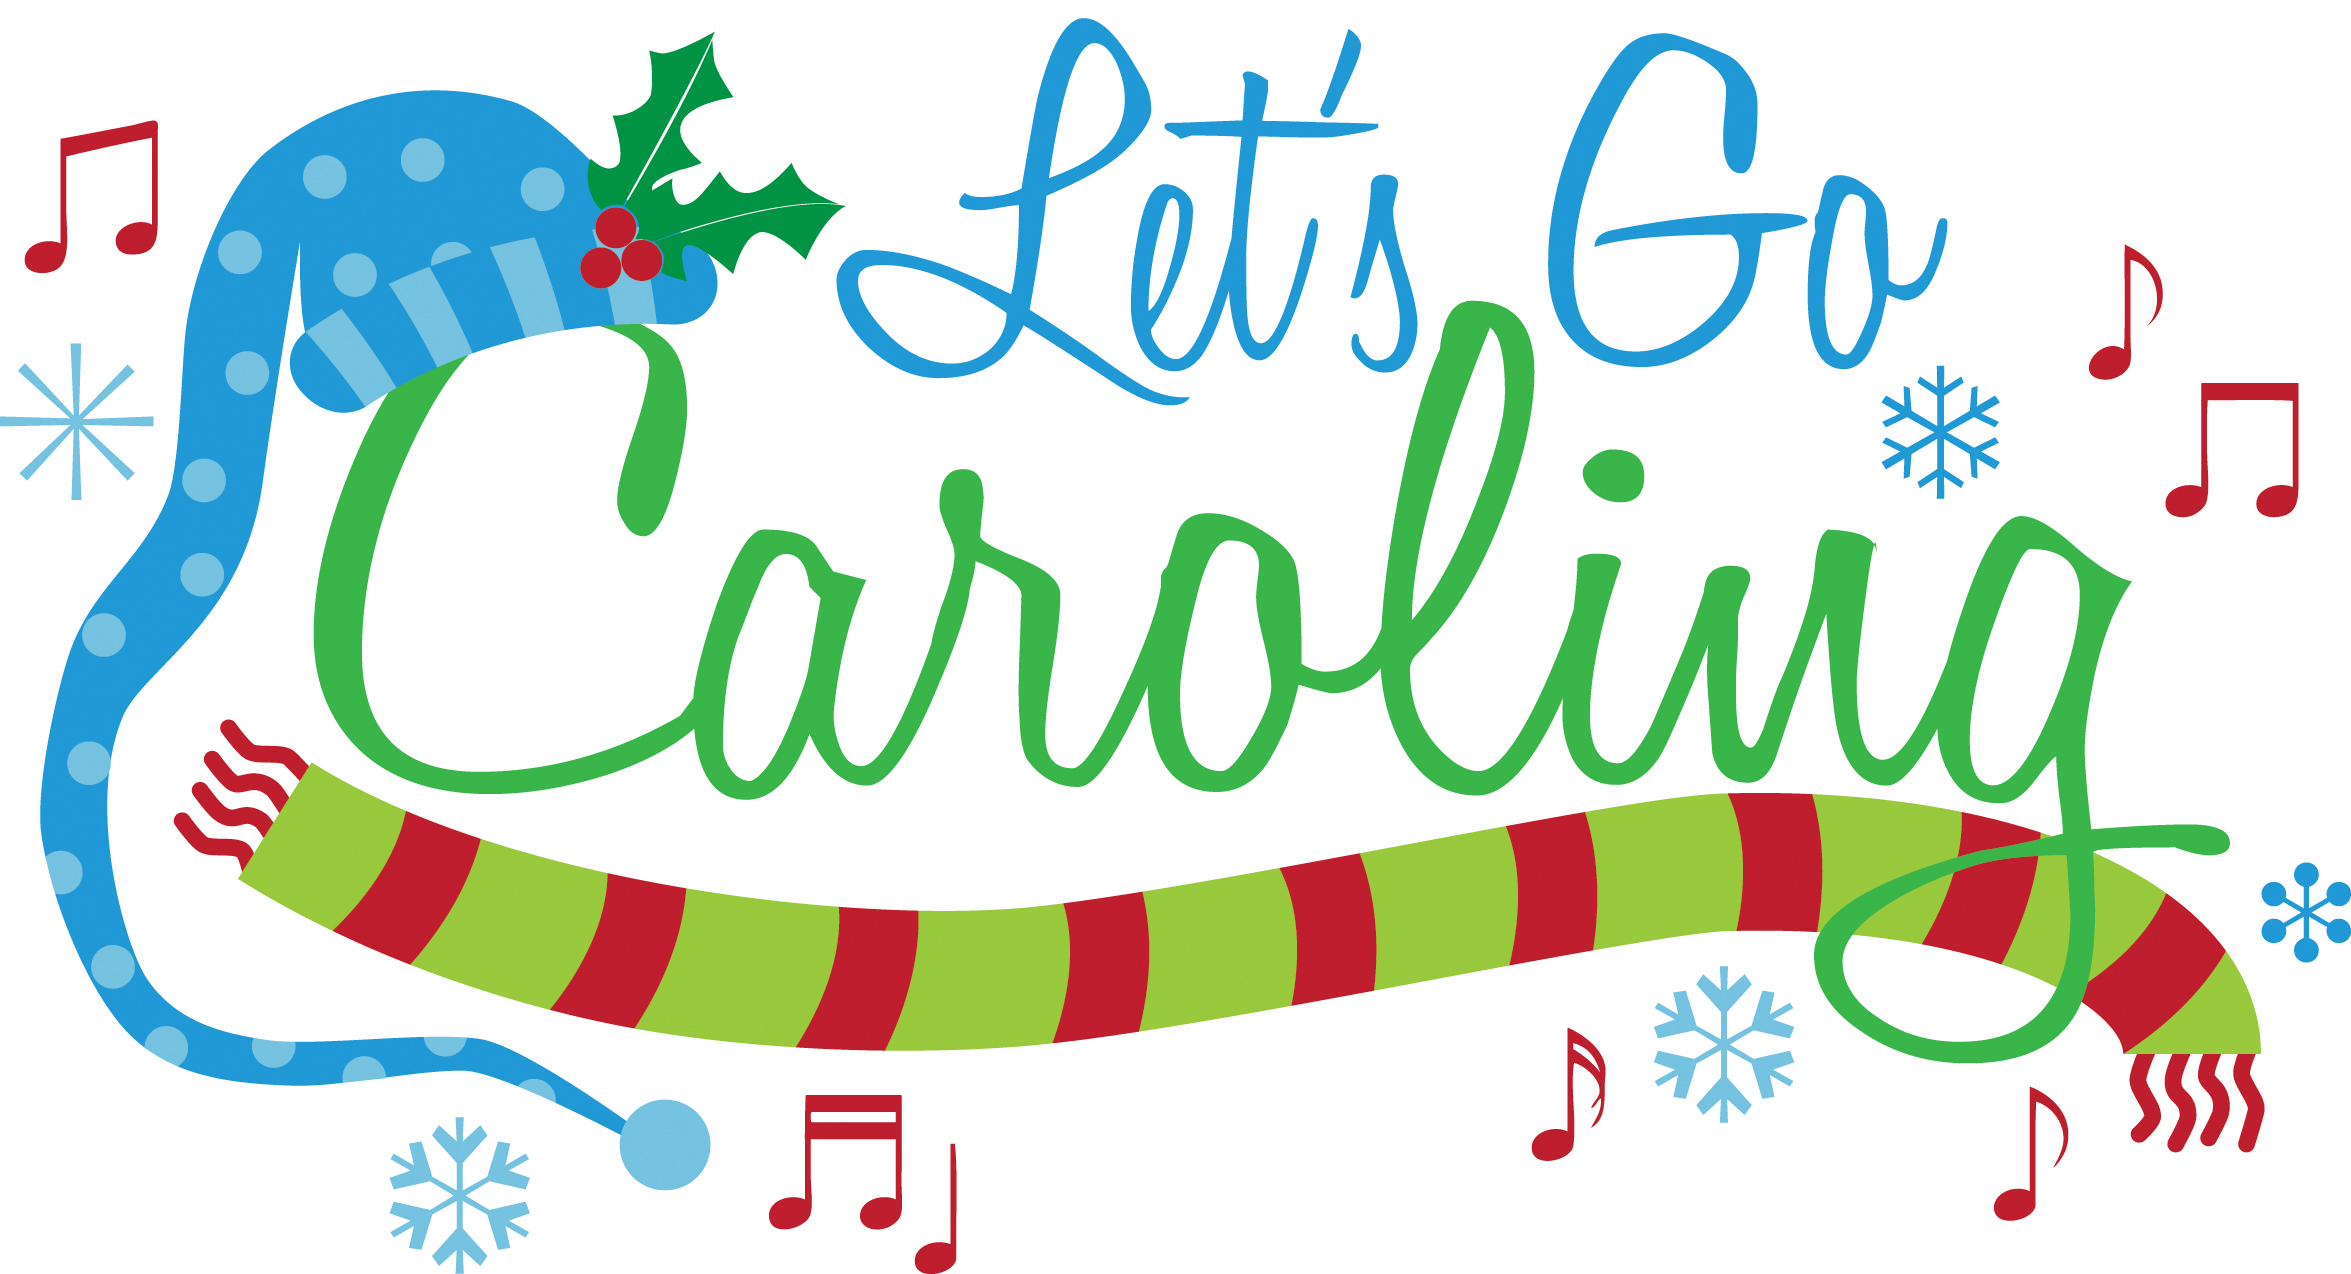 christmas caroling middleton wi united church of christ out to lunch clipart sign out to lunch clipart signs